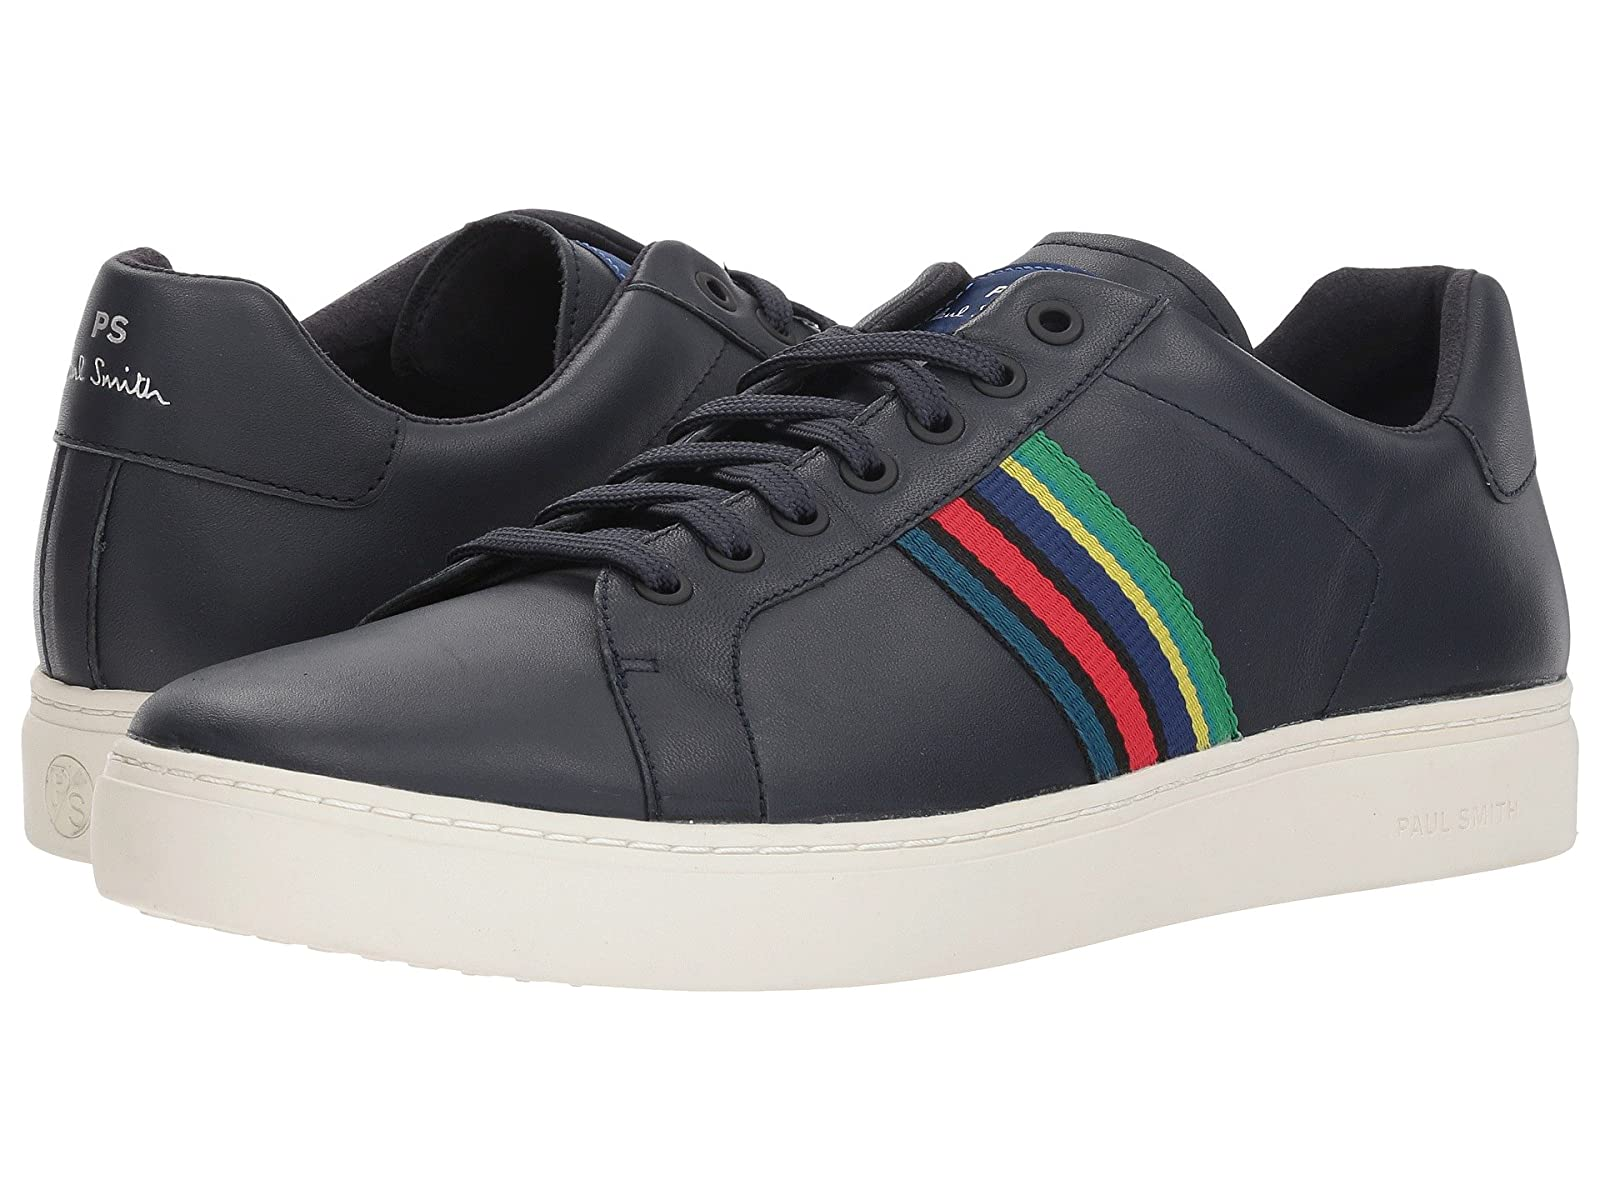 Paul Smith Lapin SneakerAtmospheric grades have affordable shoes